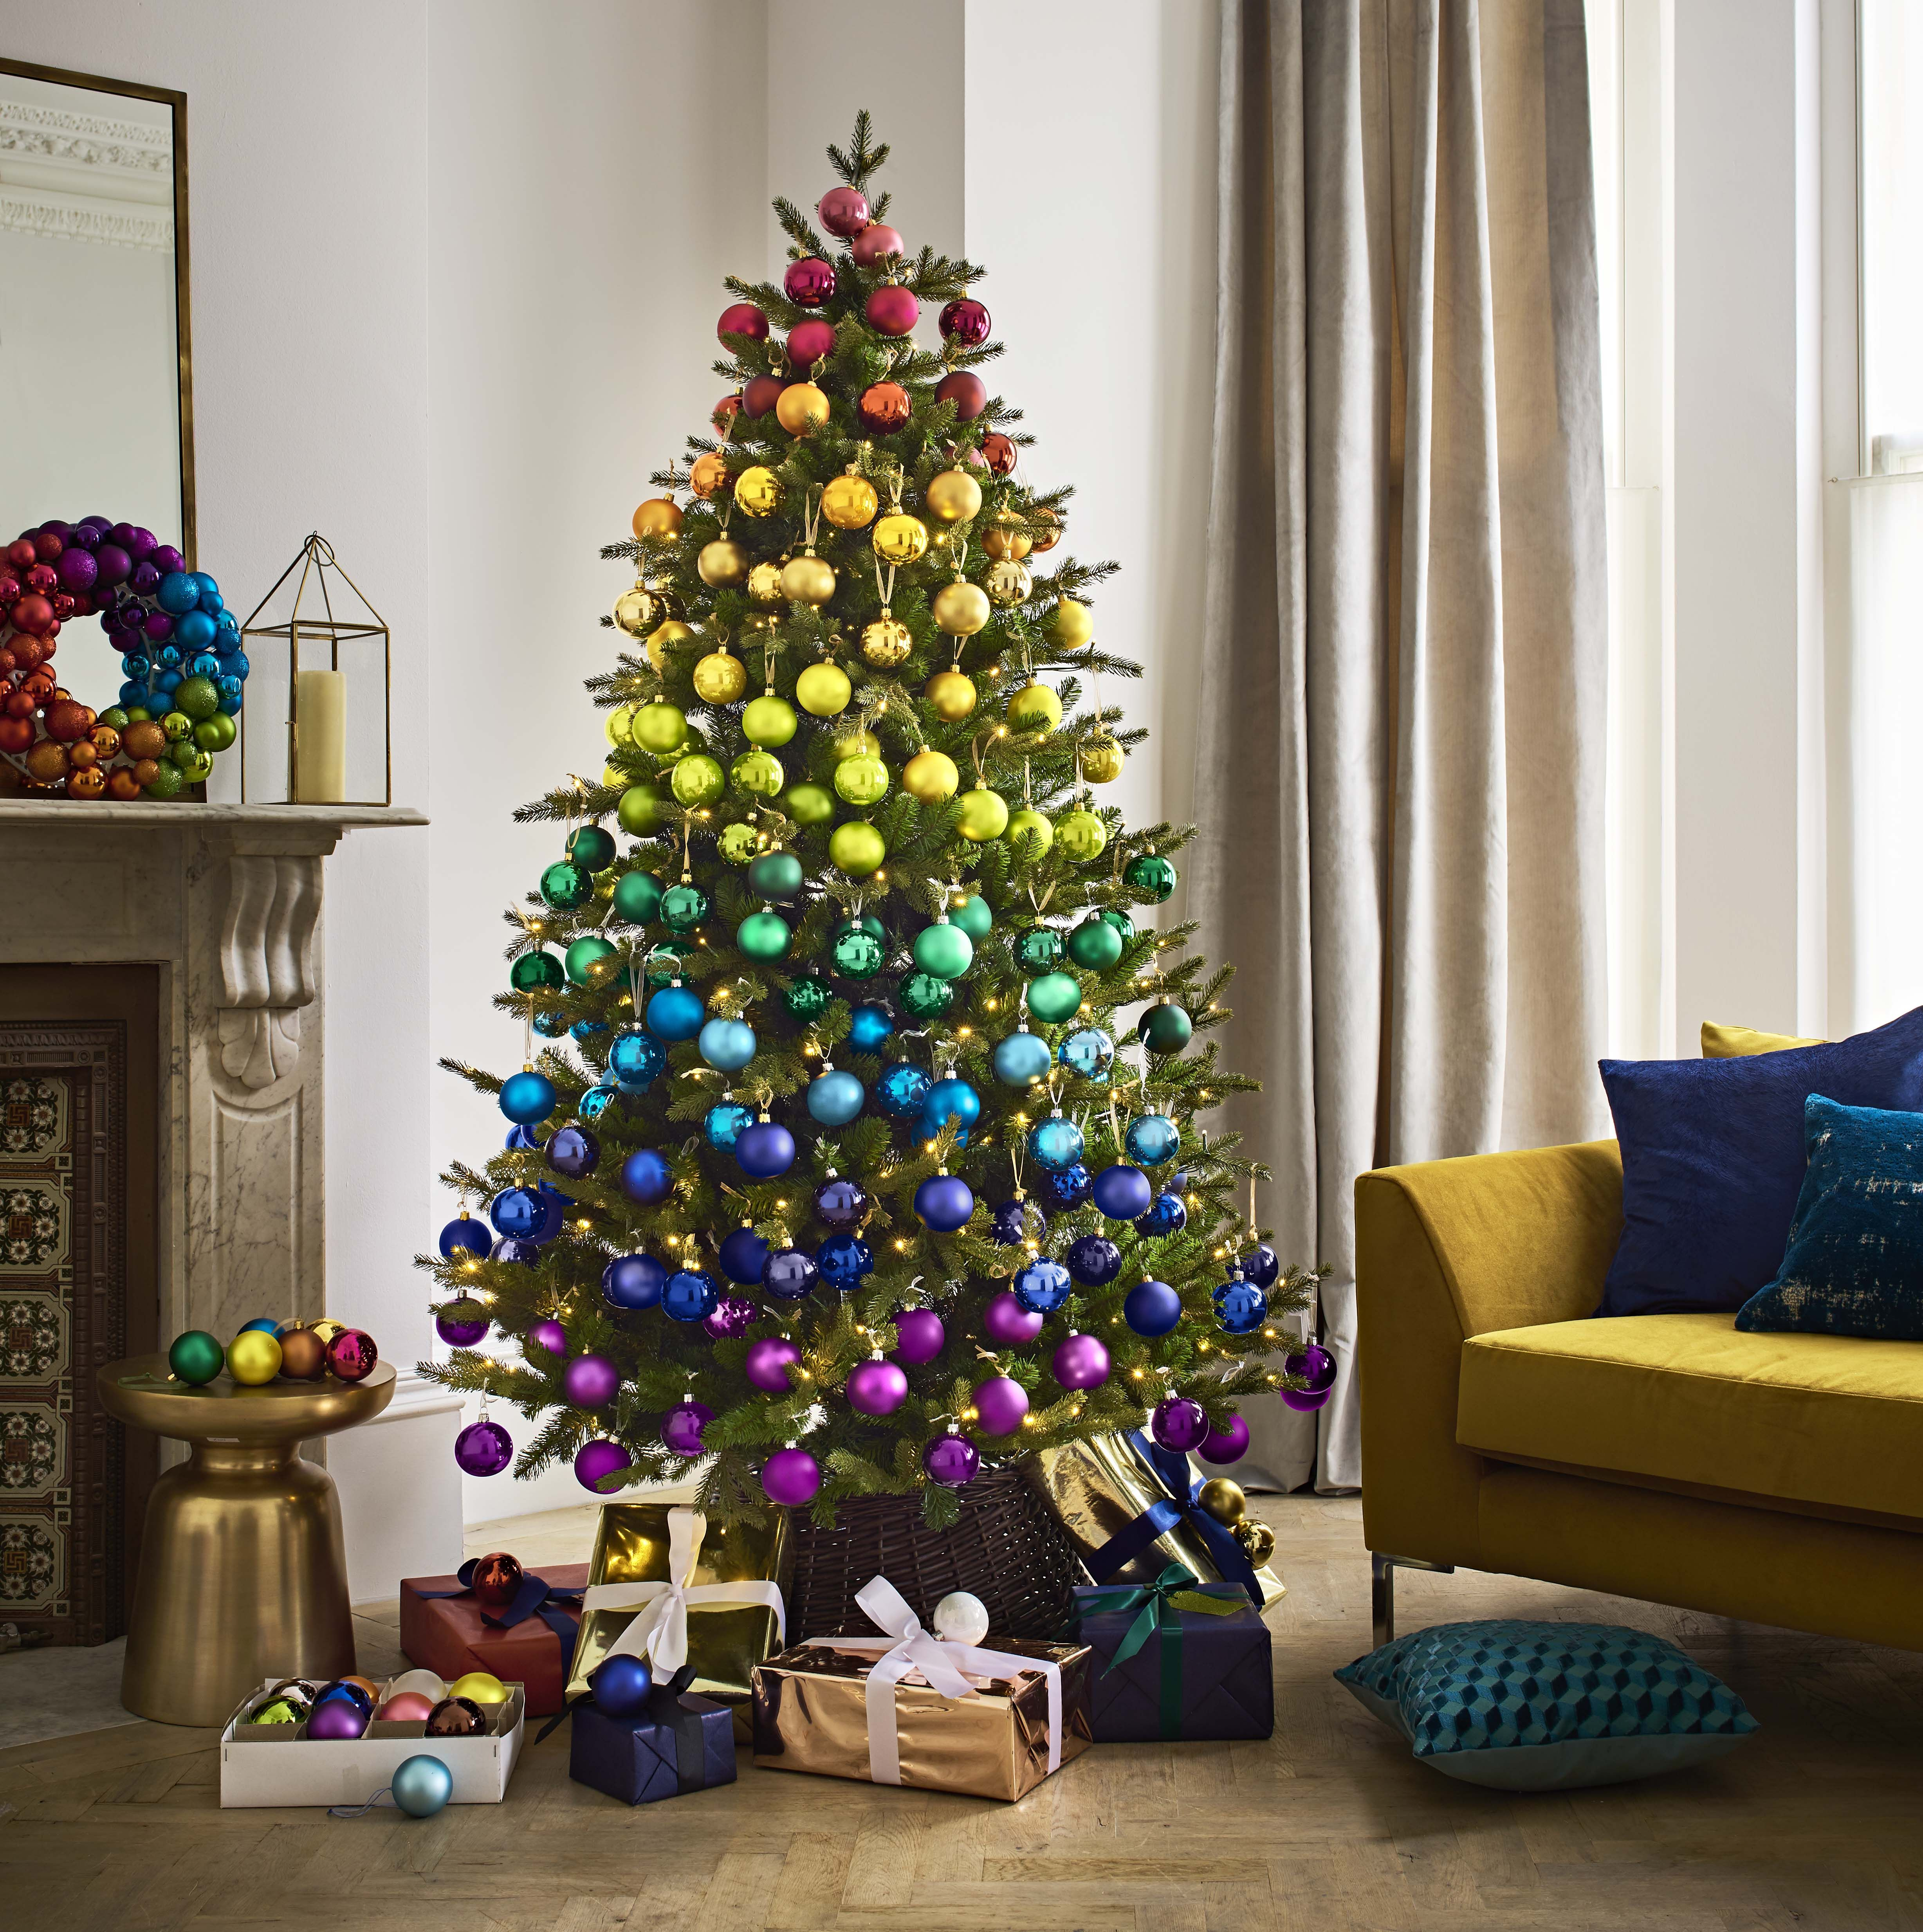 Rainbow Christmas Tree with coloured baubles and wreath- John Lewis - Christmas 2018